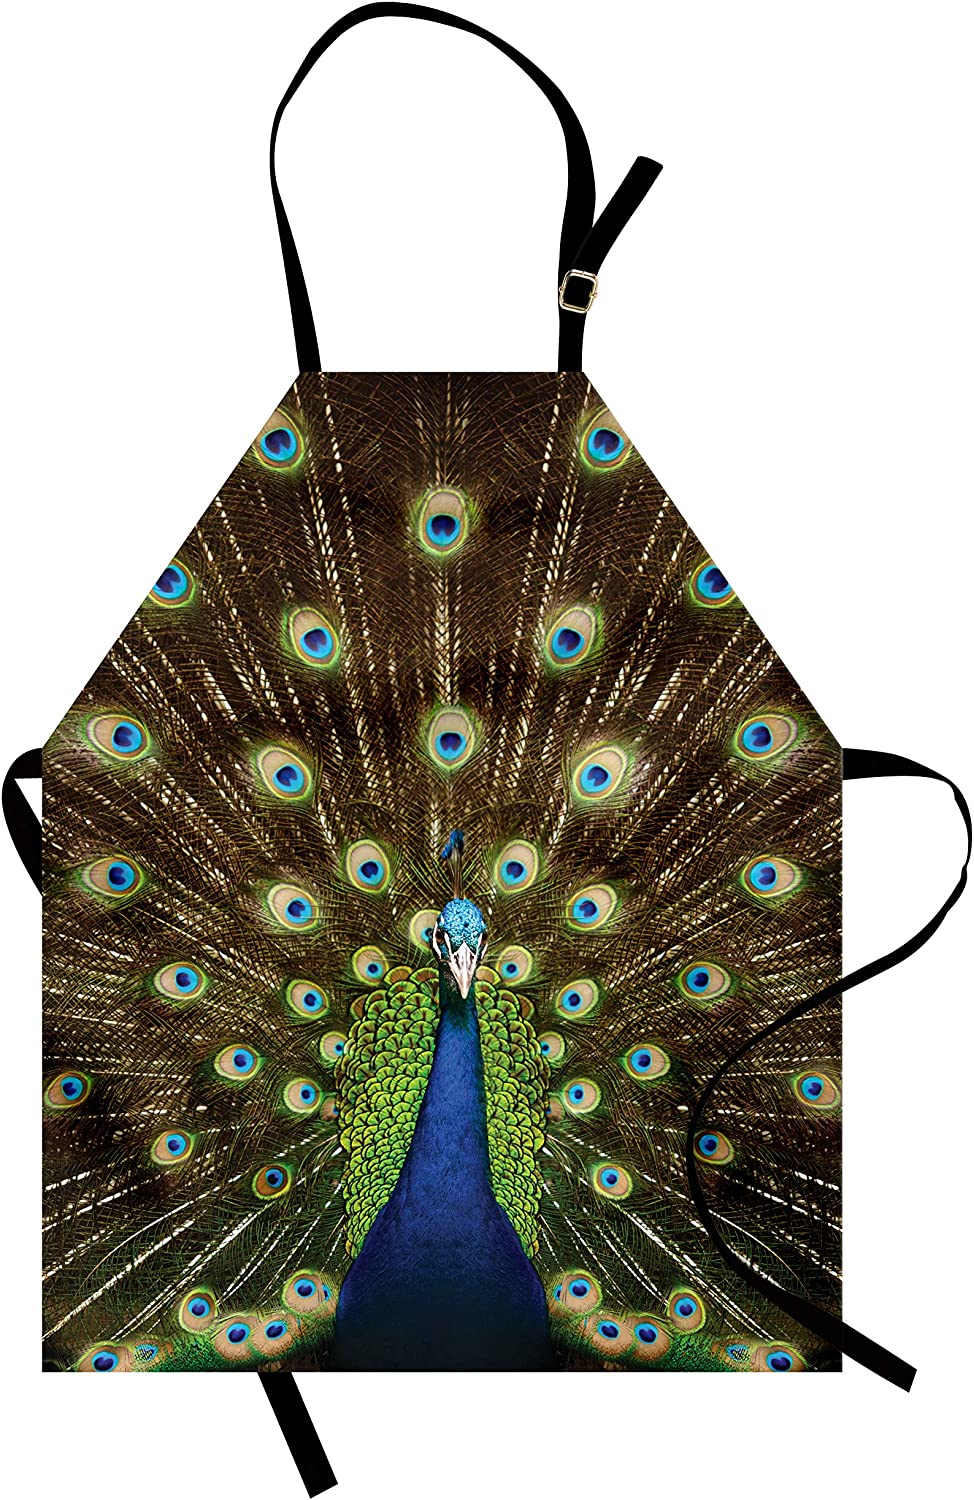 Ambesonne Peacock Apron, Portrait of Peacock with Feathers Out Vibrant Colors Birds Summer Garden, Unisex Kitchen Bib with Adjustable Neck for Cooking Gardening, Adult Size, Navy Green